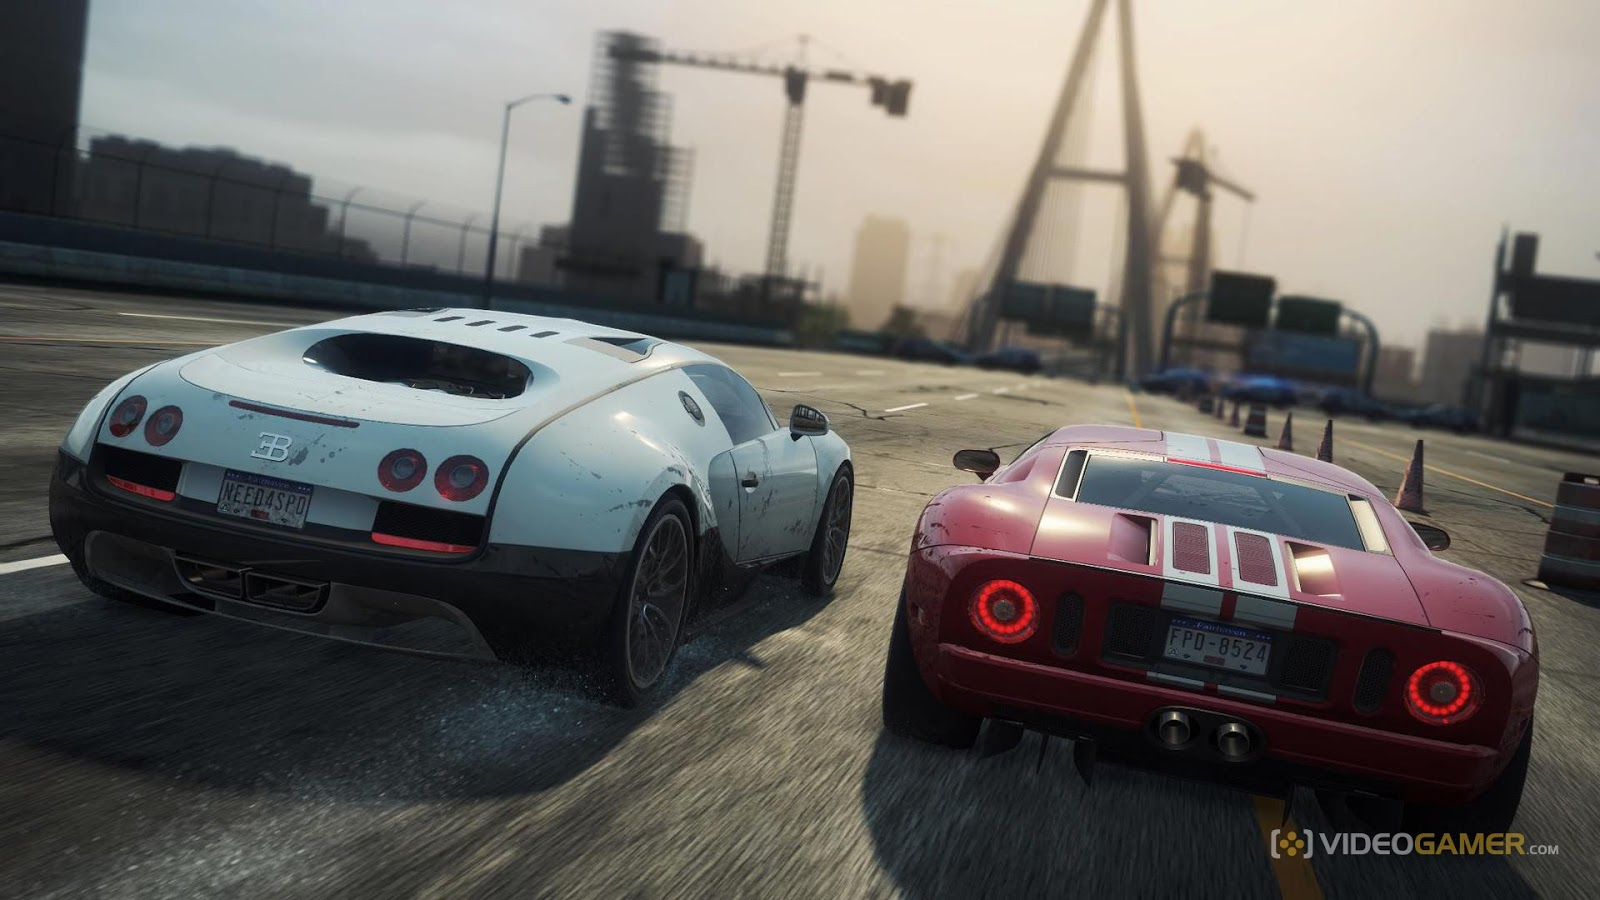 Need for speed most wanted 2012 full all types of for Need for speed most wanted full